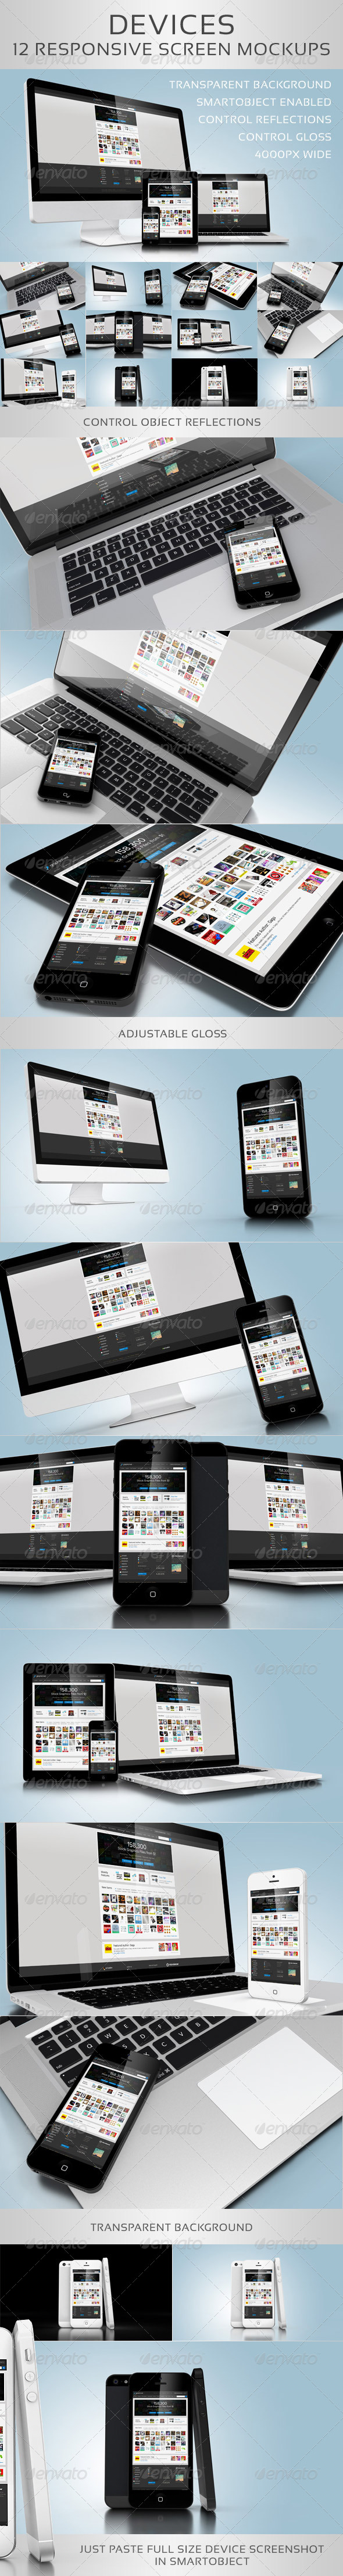 GraphicRiver Devices 12 Responsive Screen Mockups 5926966